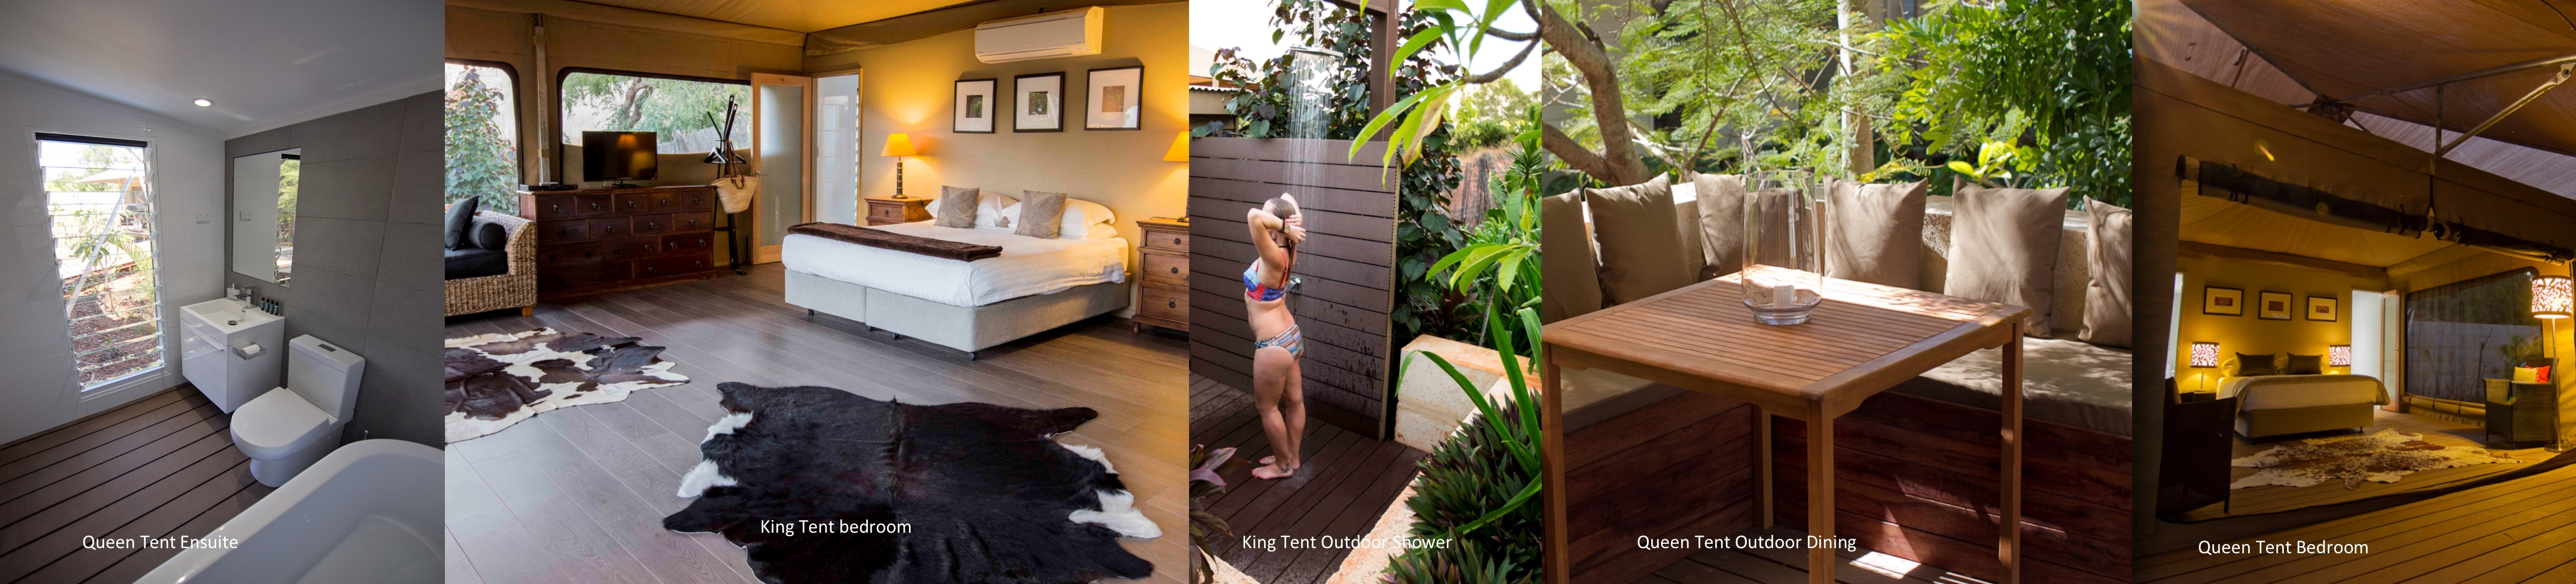 Website Tent photo Line - Accommodation page